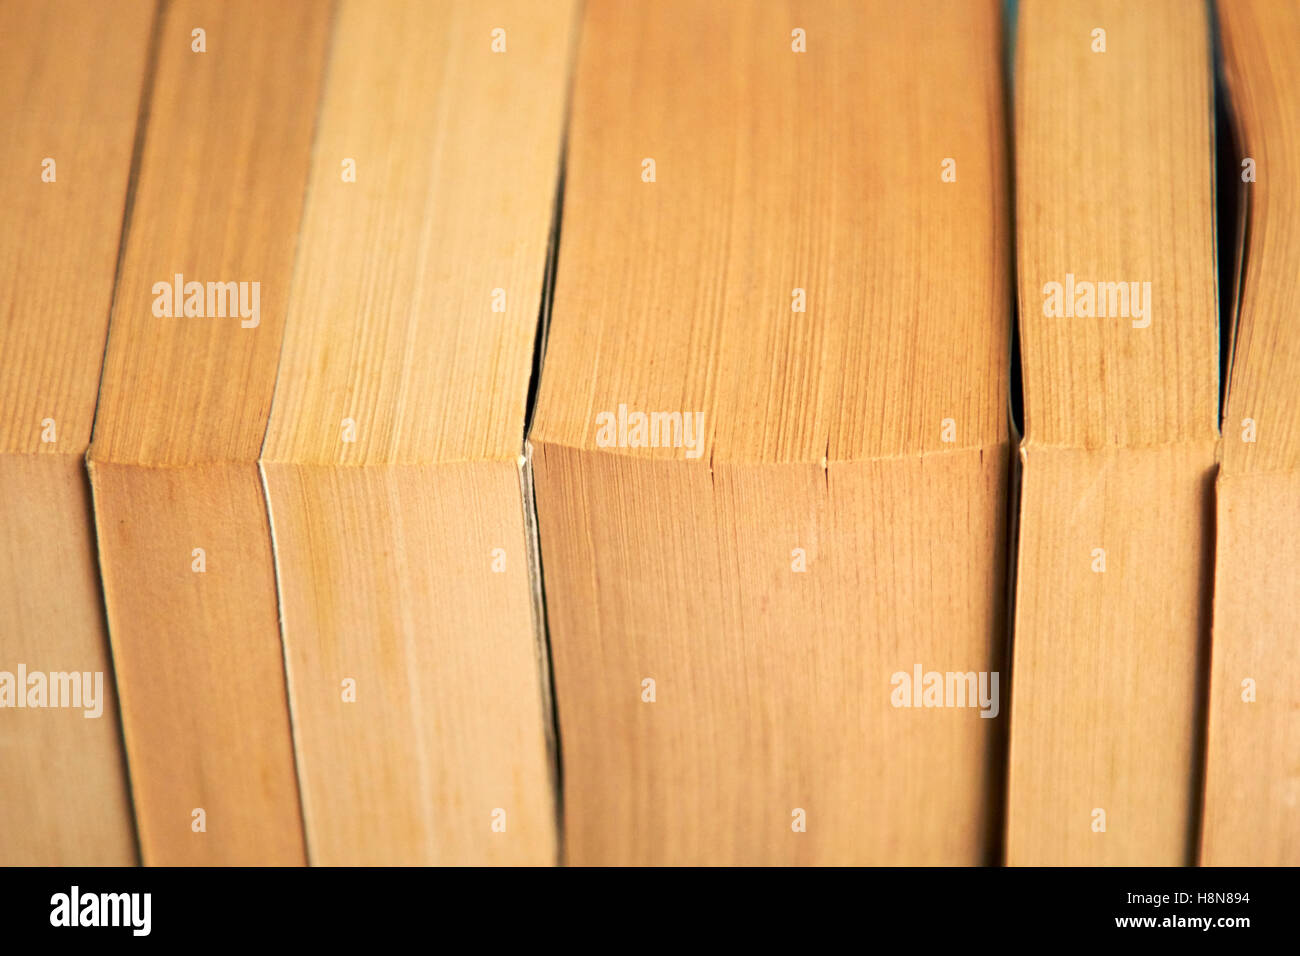 row of used paperback books in the uk - Stock Image